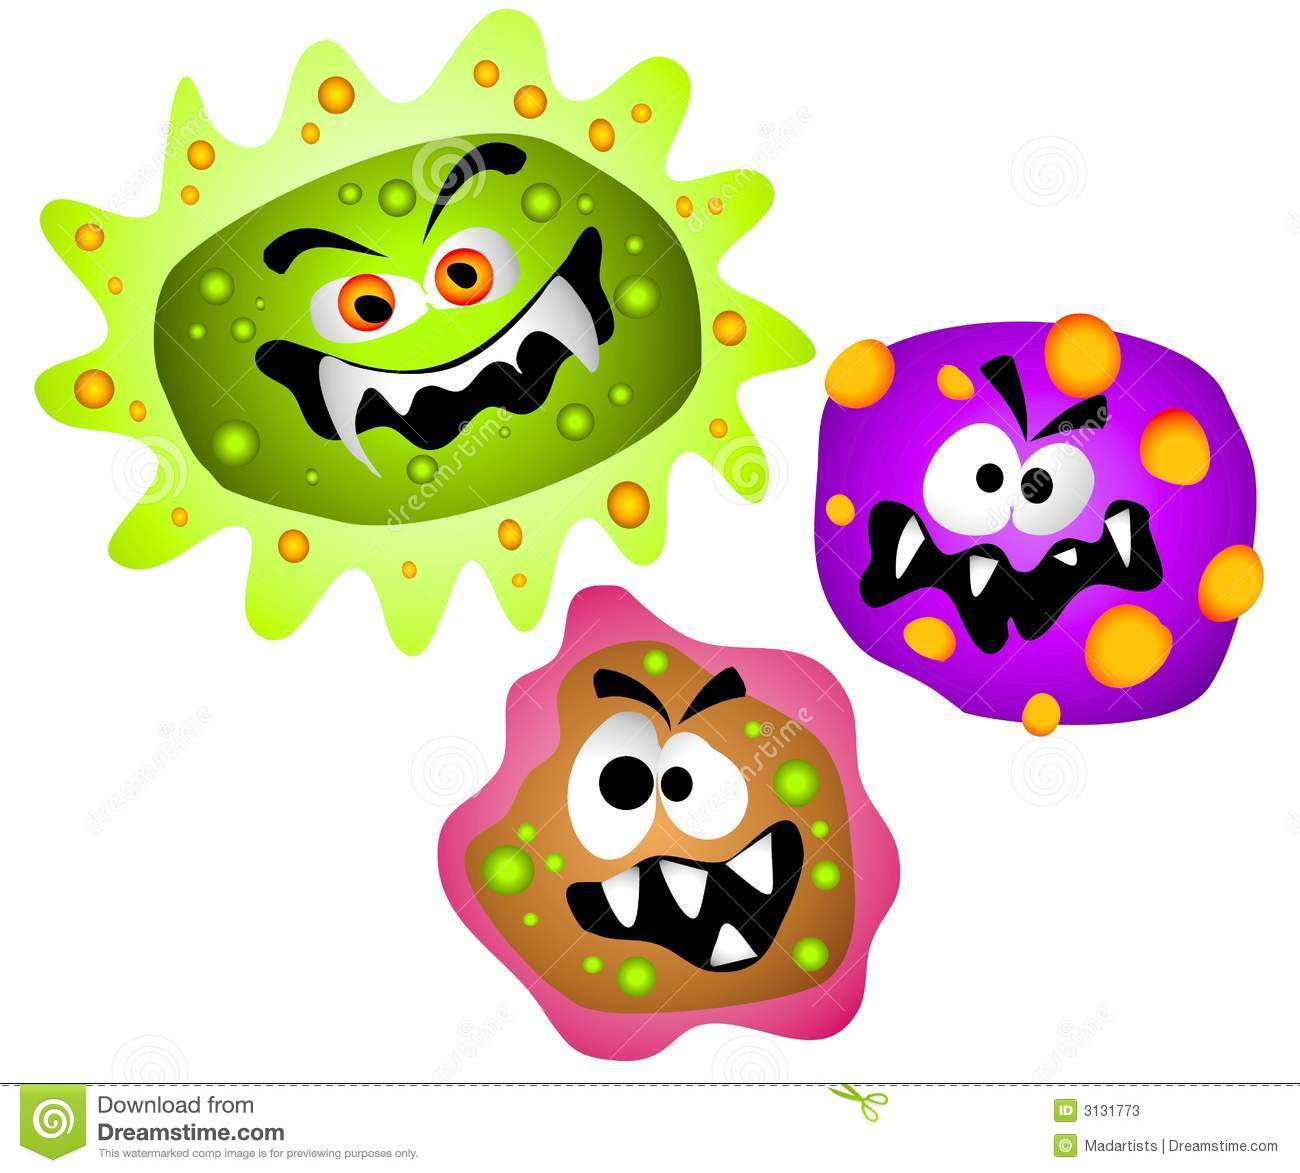 Bacteria clipart #4, Download drawings